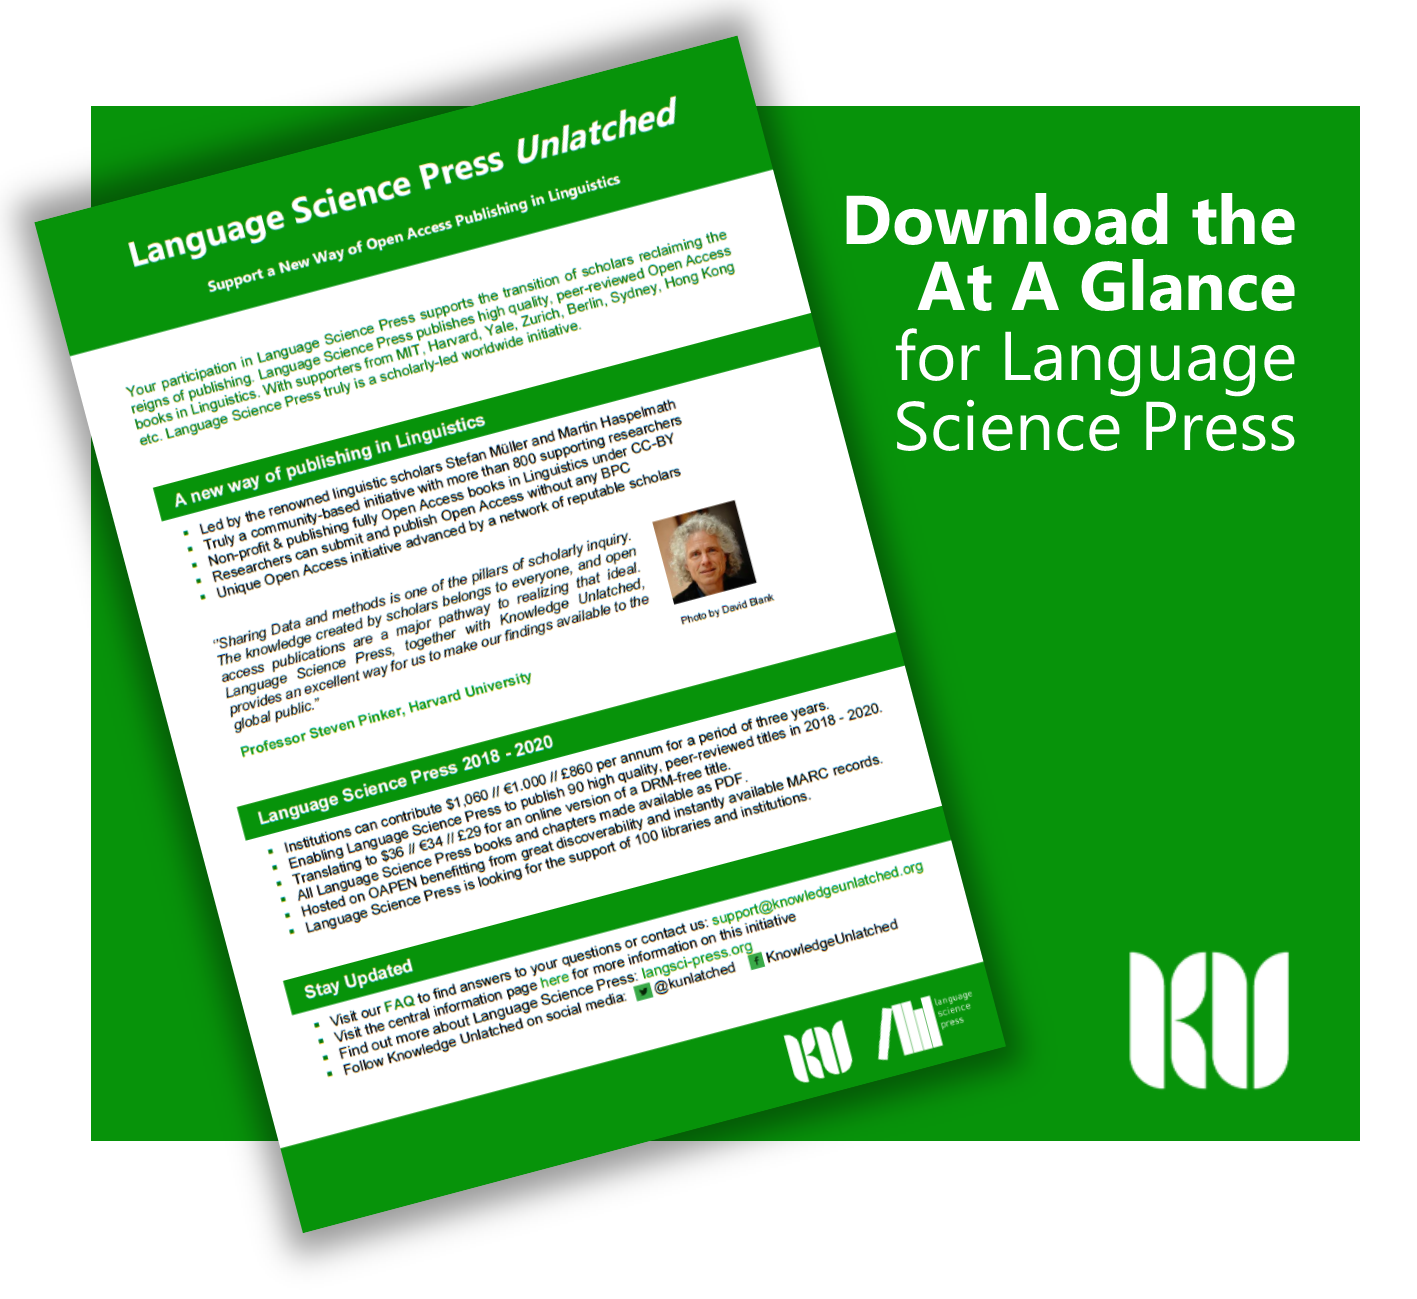 Language Science Press_AT A Glance_Download